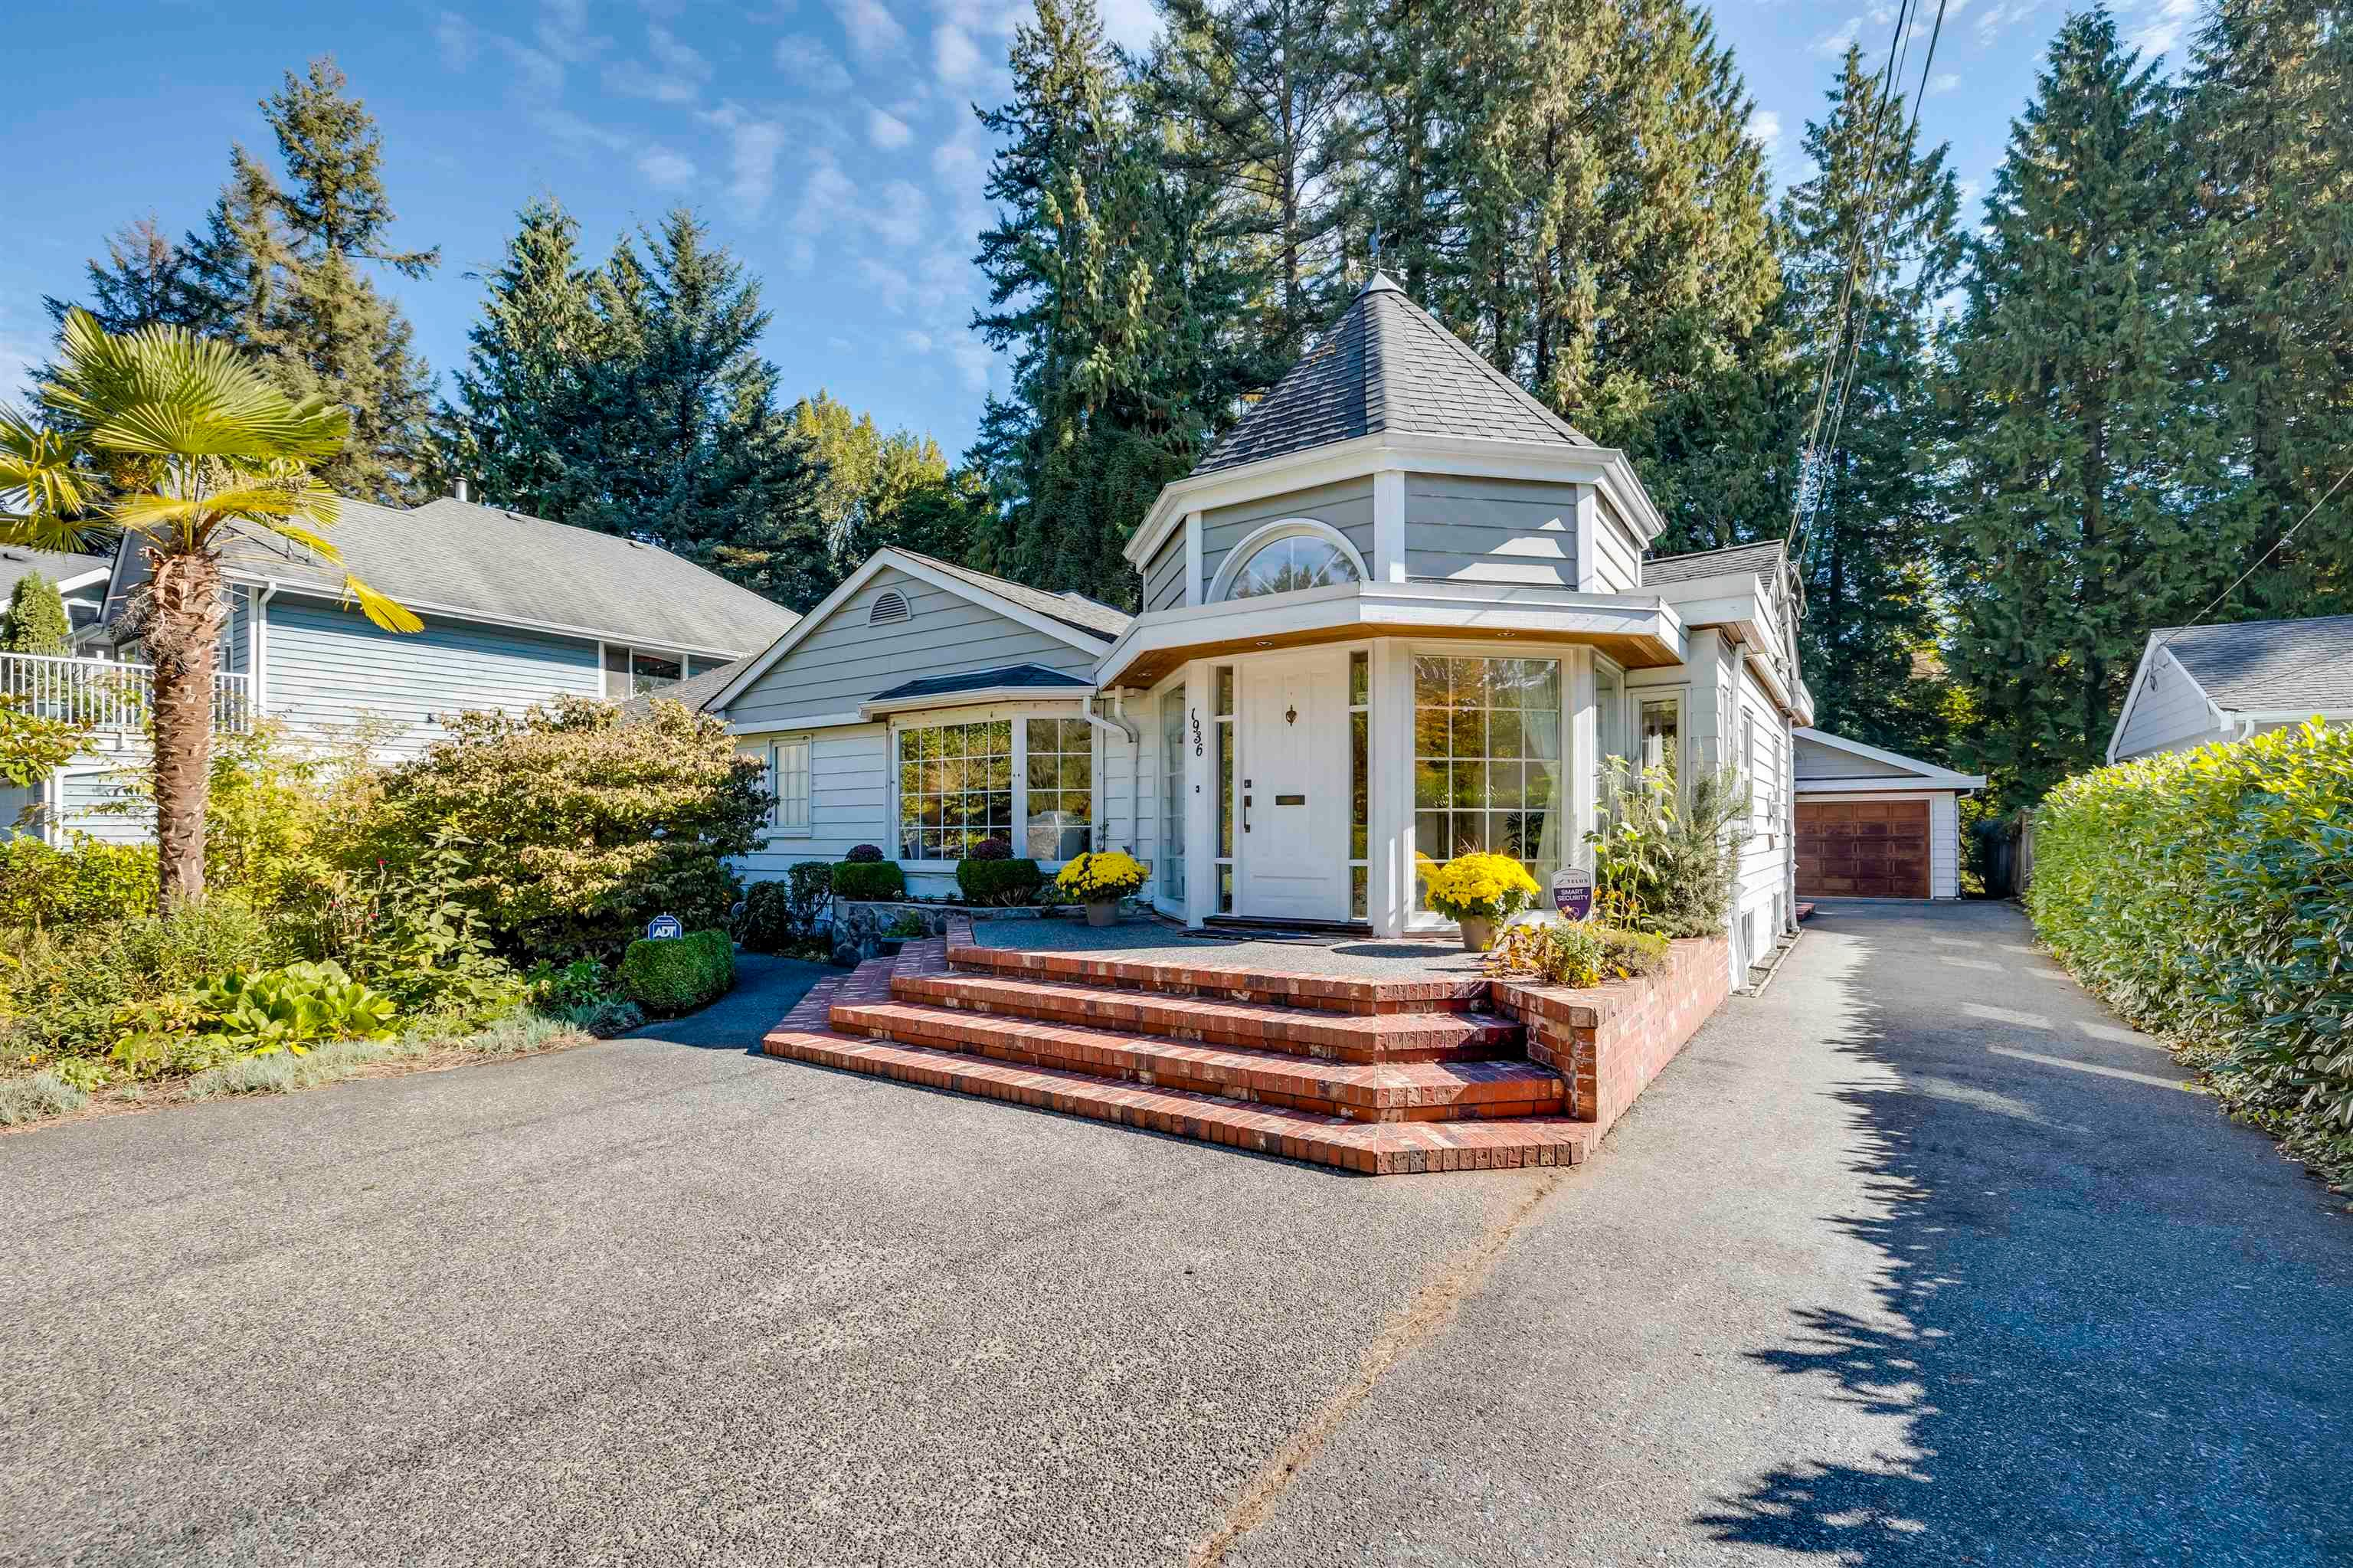 Main Photo: 1936 MACKAY Avenue in North Vancouver: Pemberton Heights House for sale : MLS®# R2621071